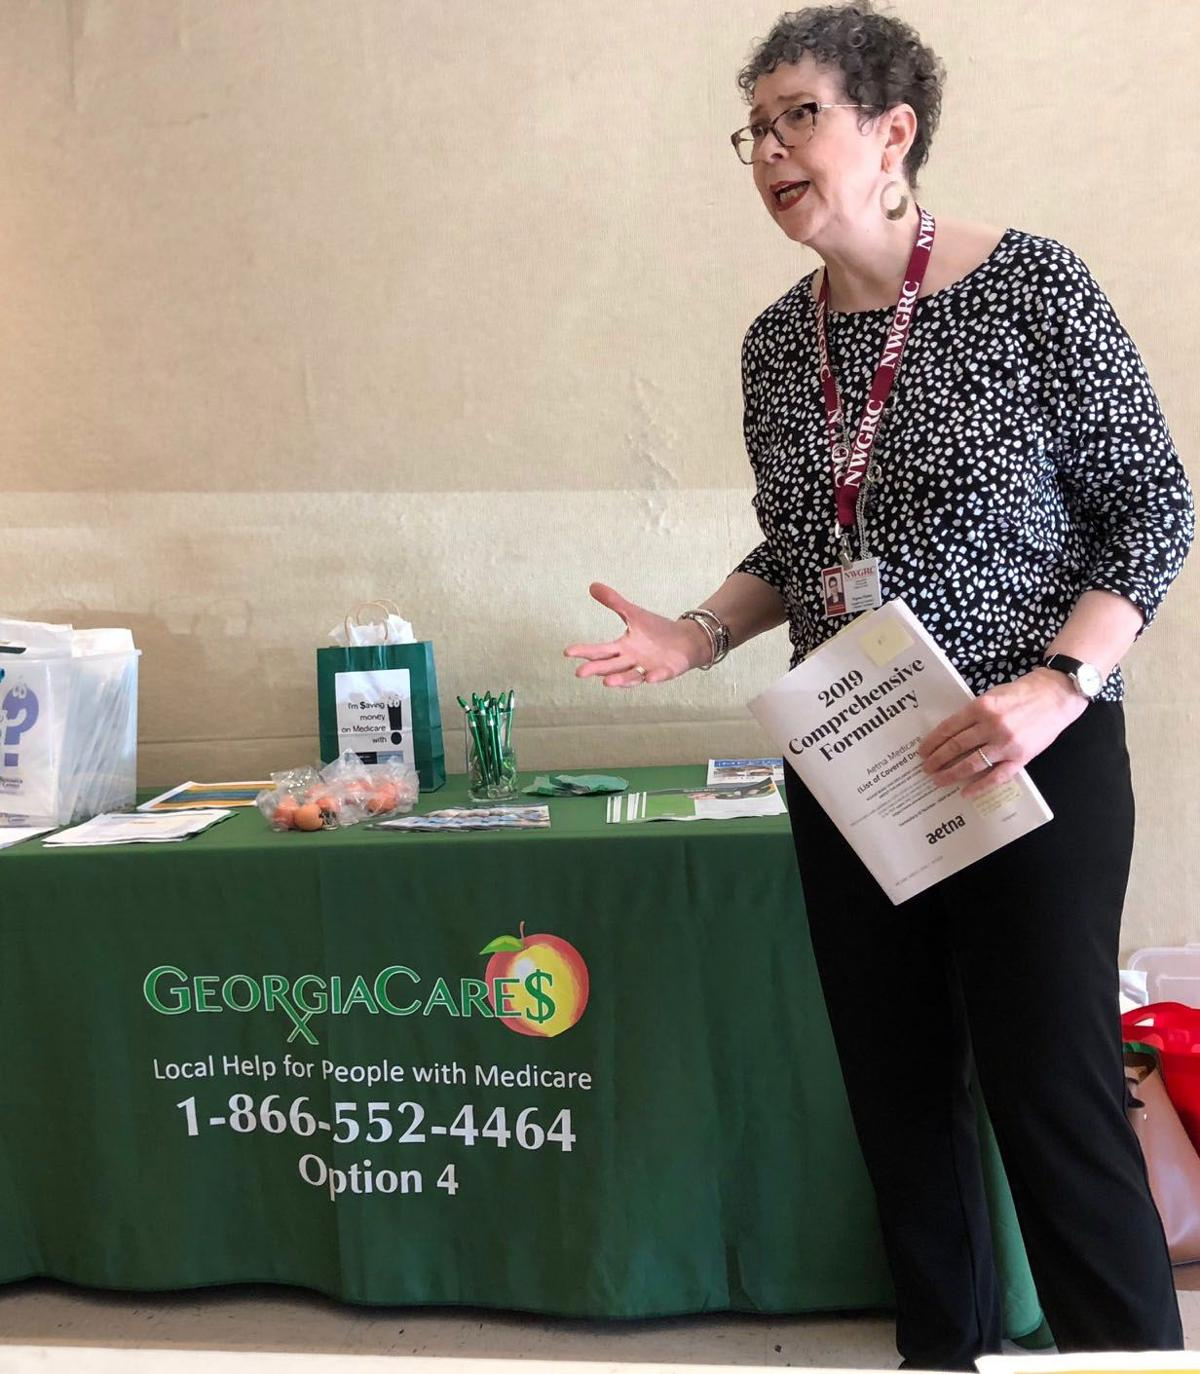 GeorgiaCares counselor gives tips on saving medical costs for those on Medicare